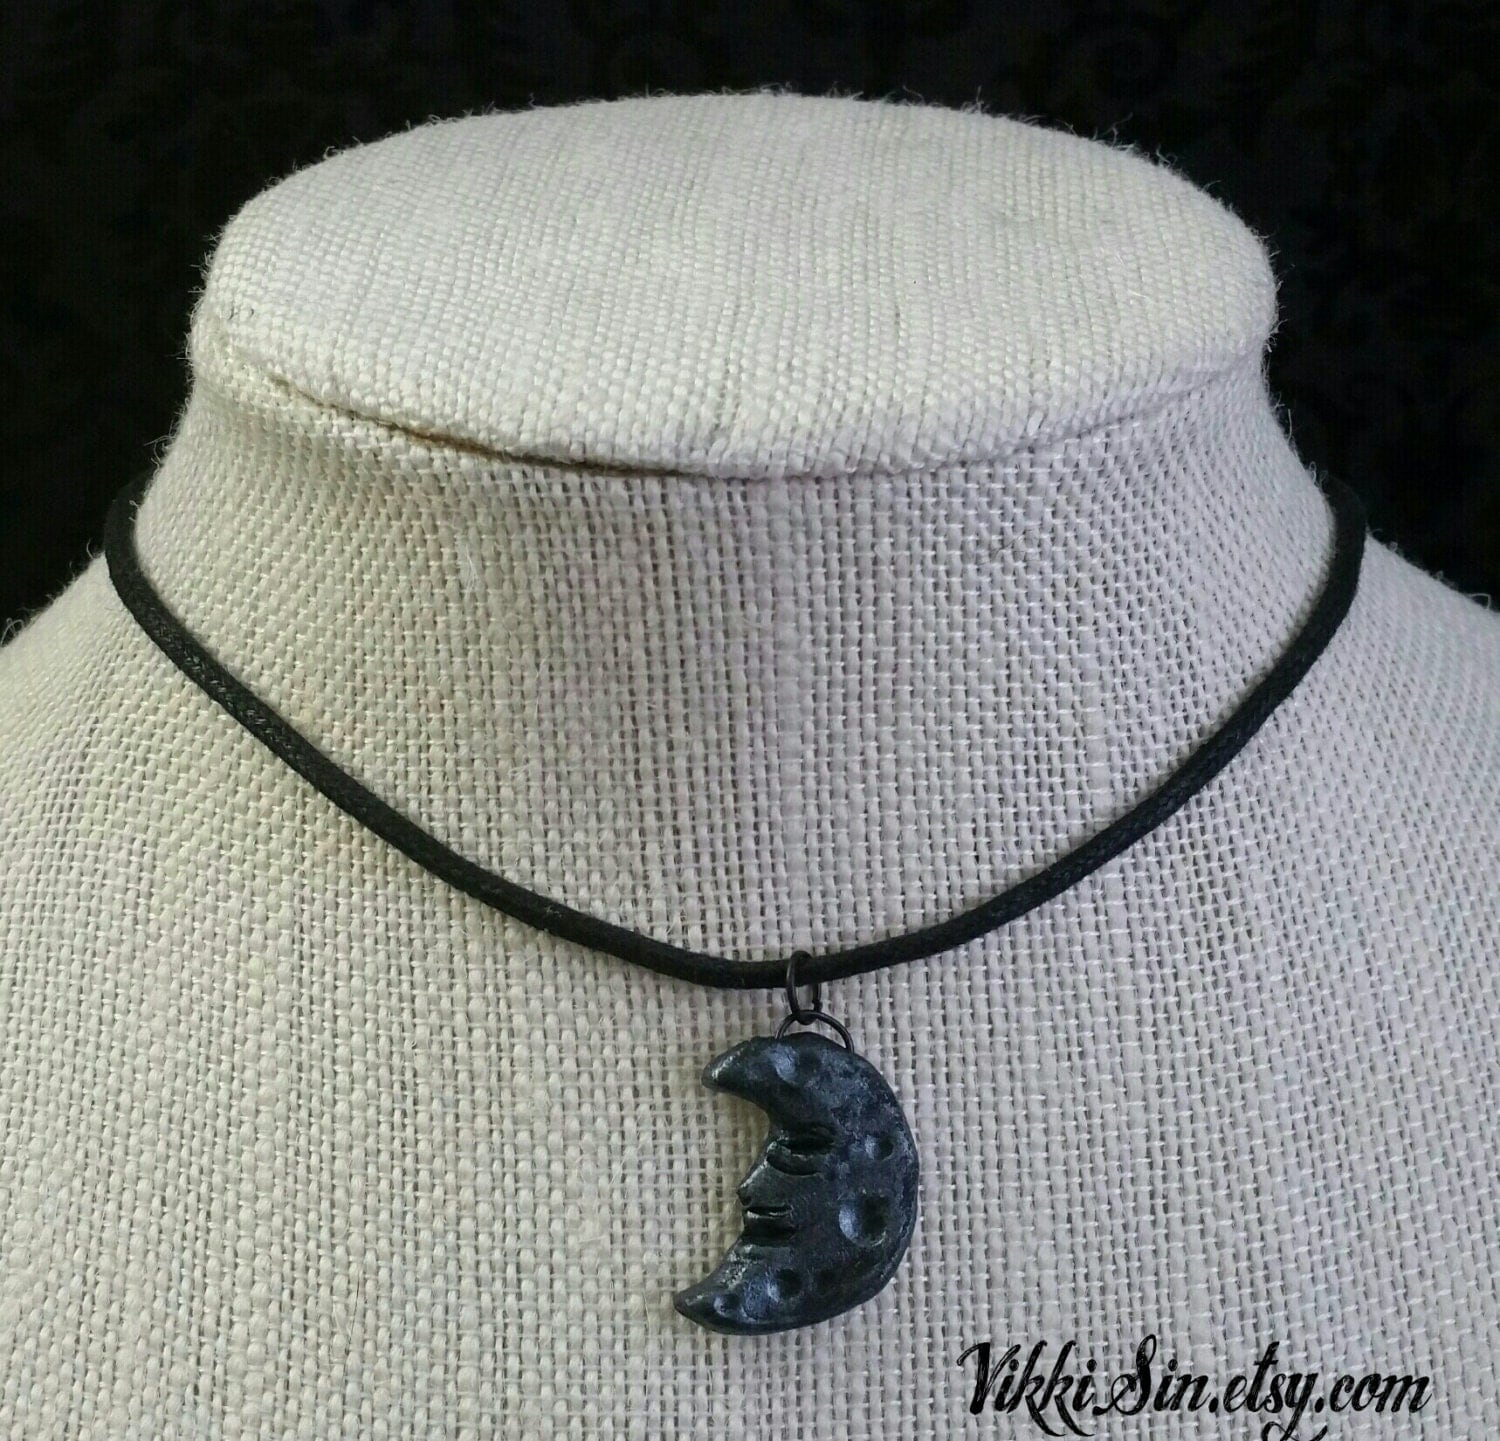 Man in the Moon Handmade Charm Choker Necklace by VikkiSin